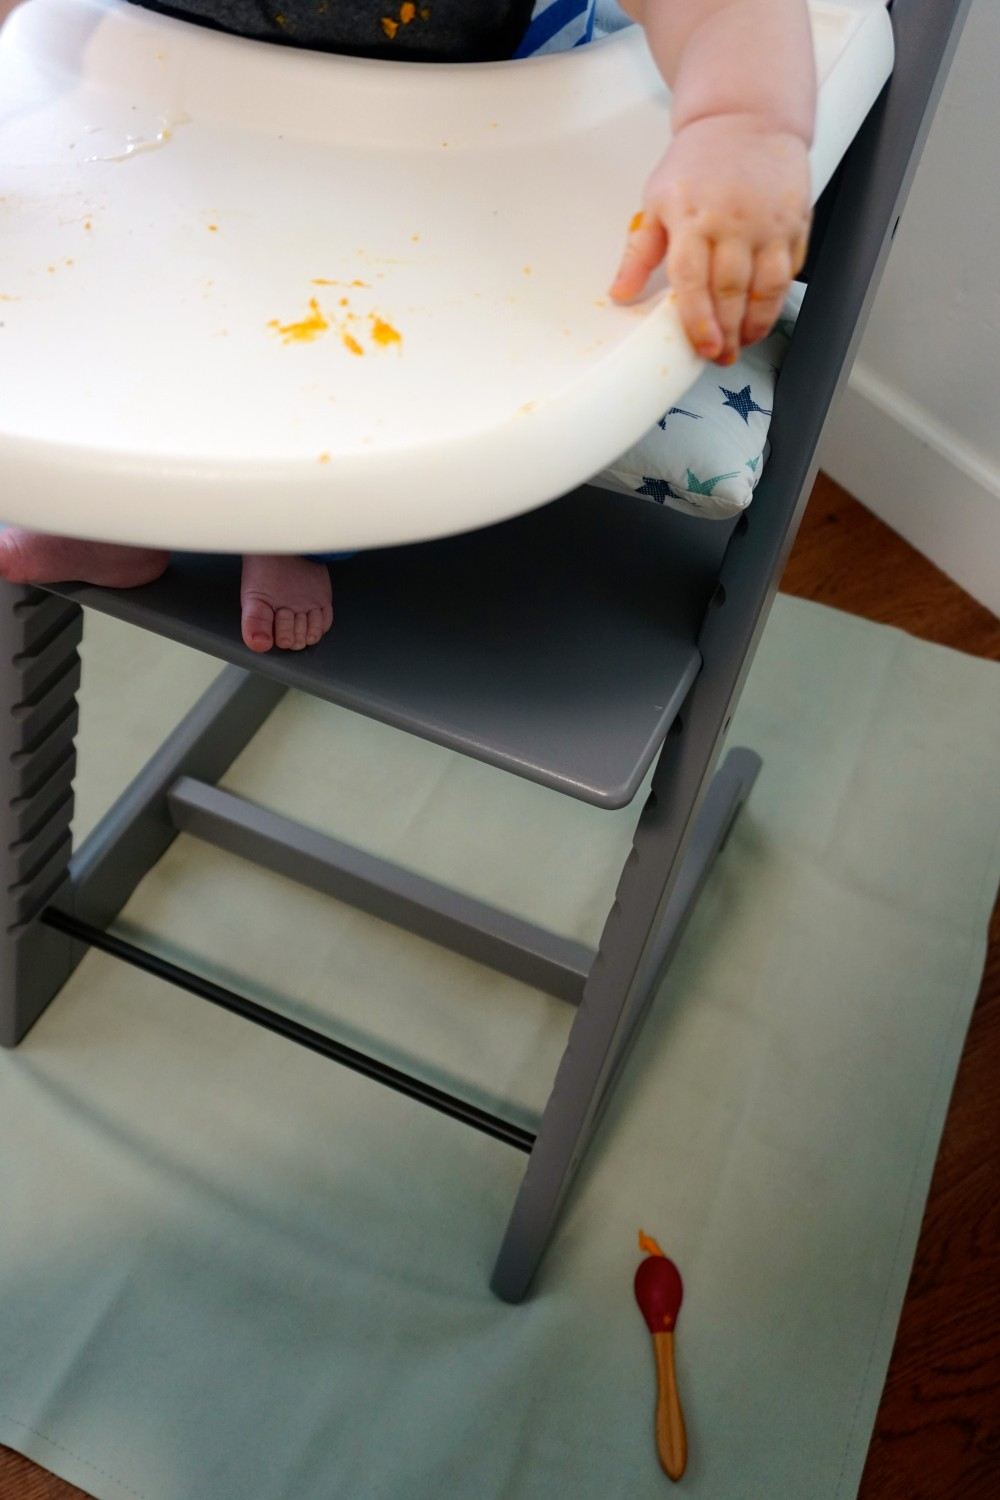 Mason's First Food Made Easier with Gathre Floor Mat-Avanchy Bamboo Spoon-Stokke High Chair-Gathre Mat-Have Need Want 7